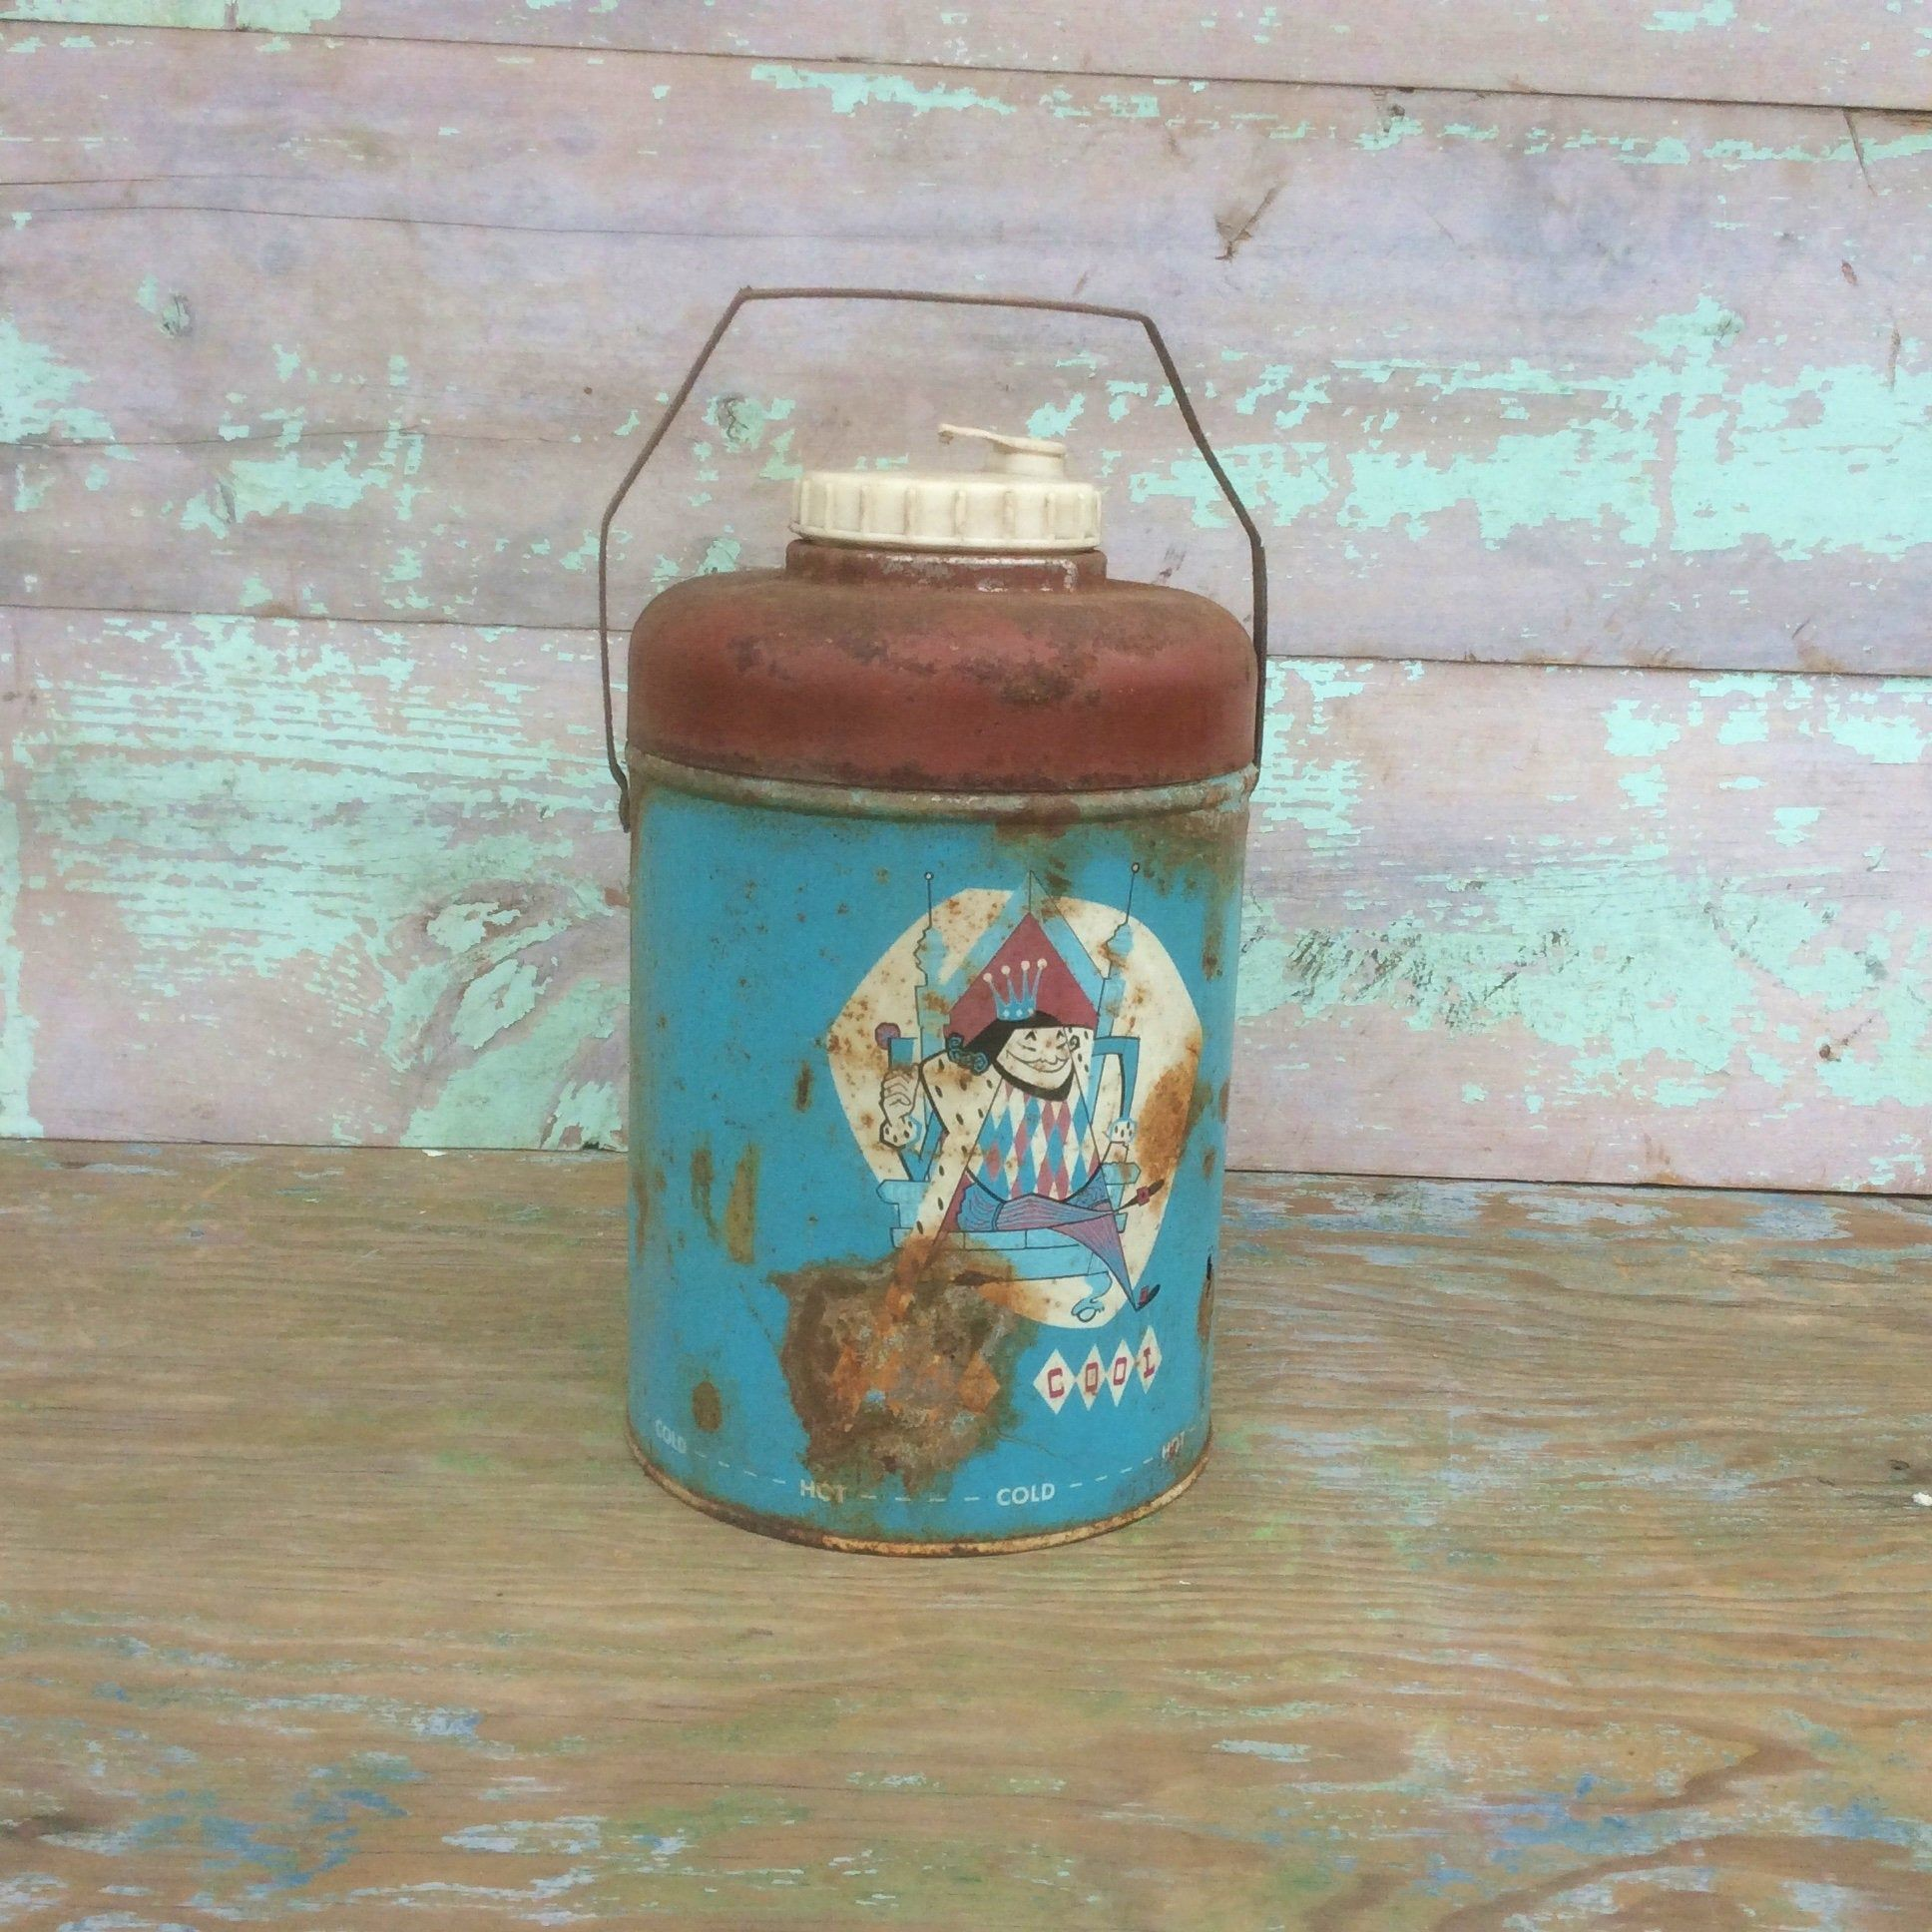 """Rusty Turquoise & Red Metal Vintage 1950s """"KING COOL"""" Hot"""